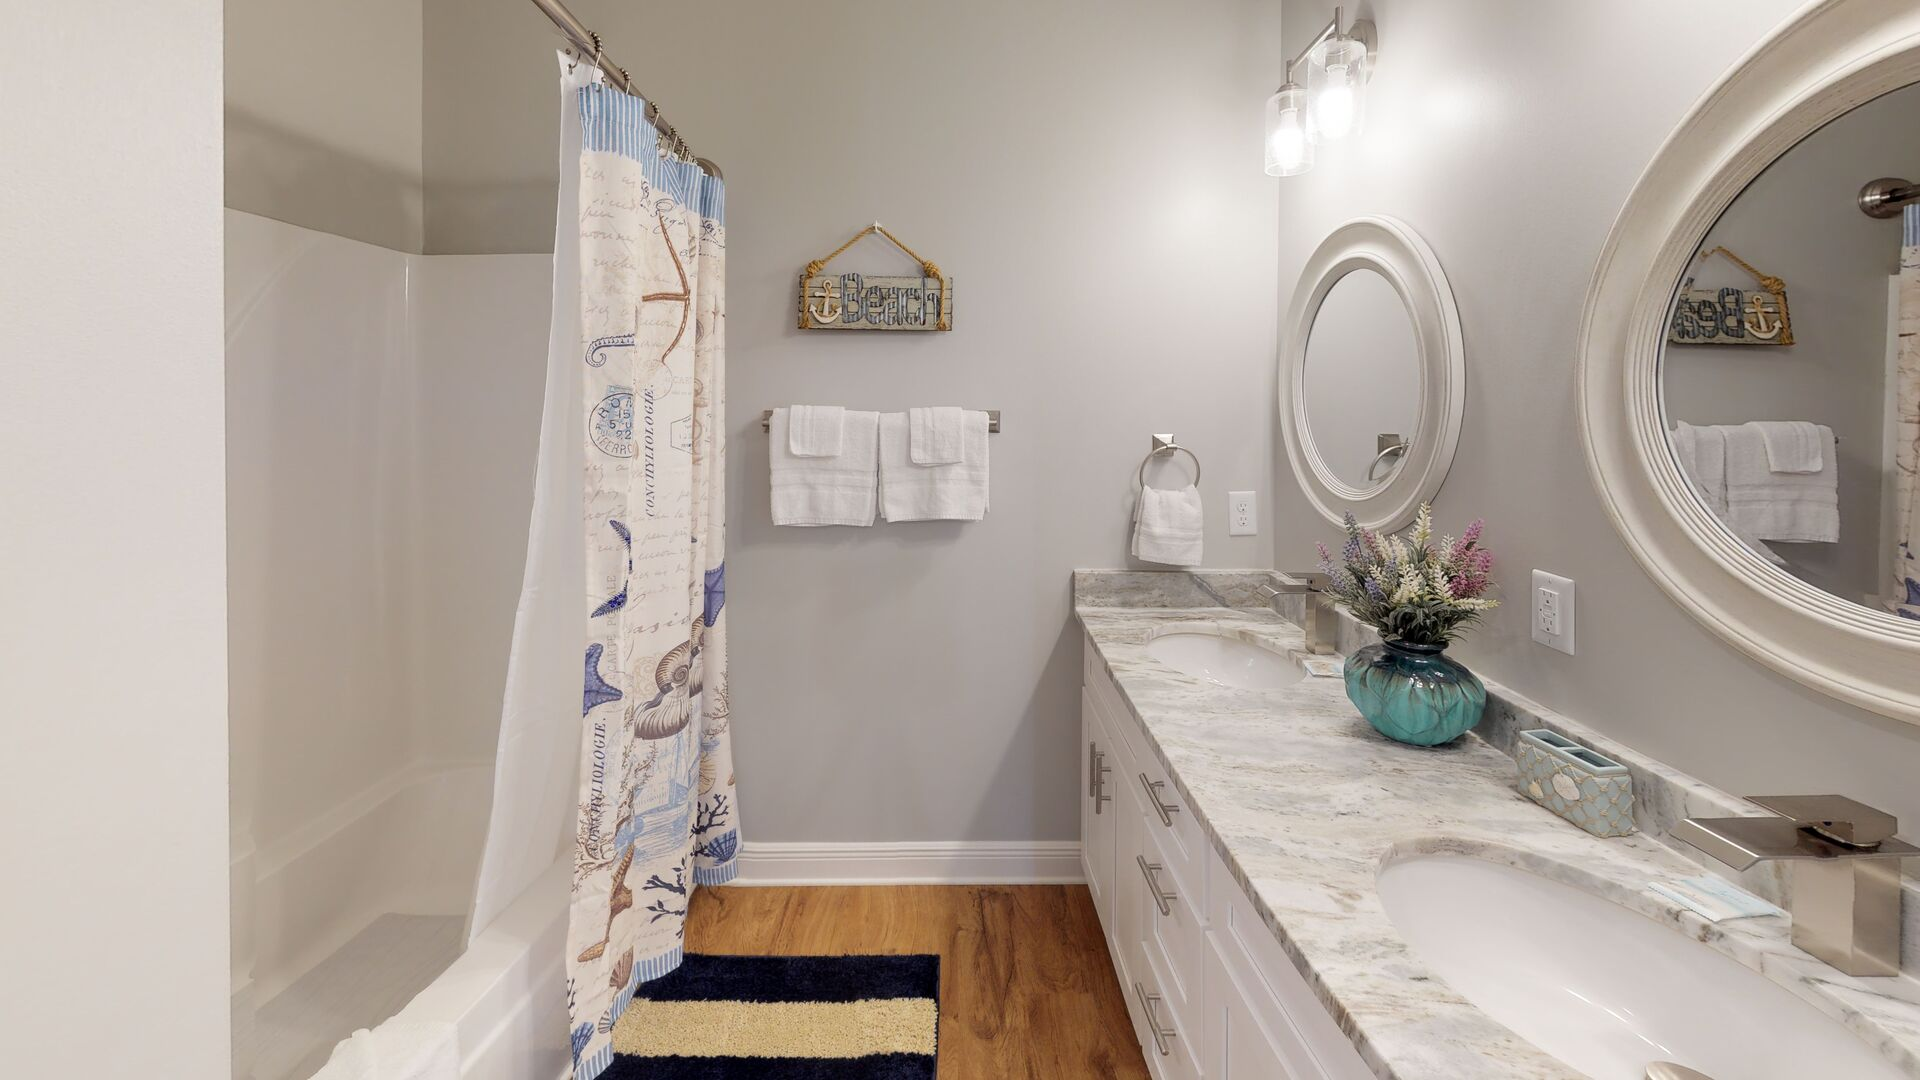 Double Sink Vanity, Mirrors, and Shower-Tub Combo.